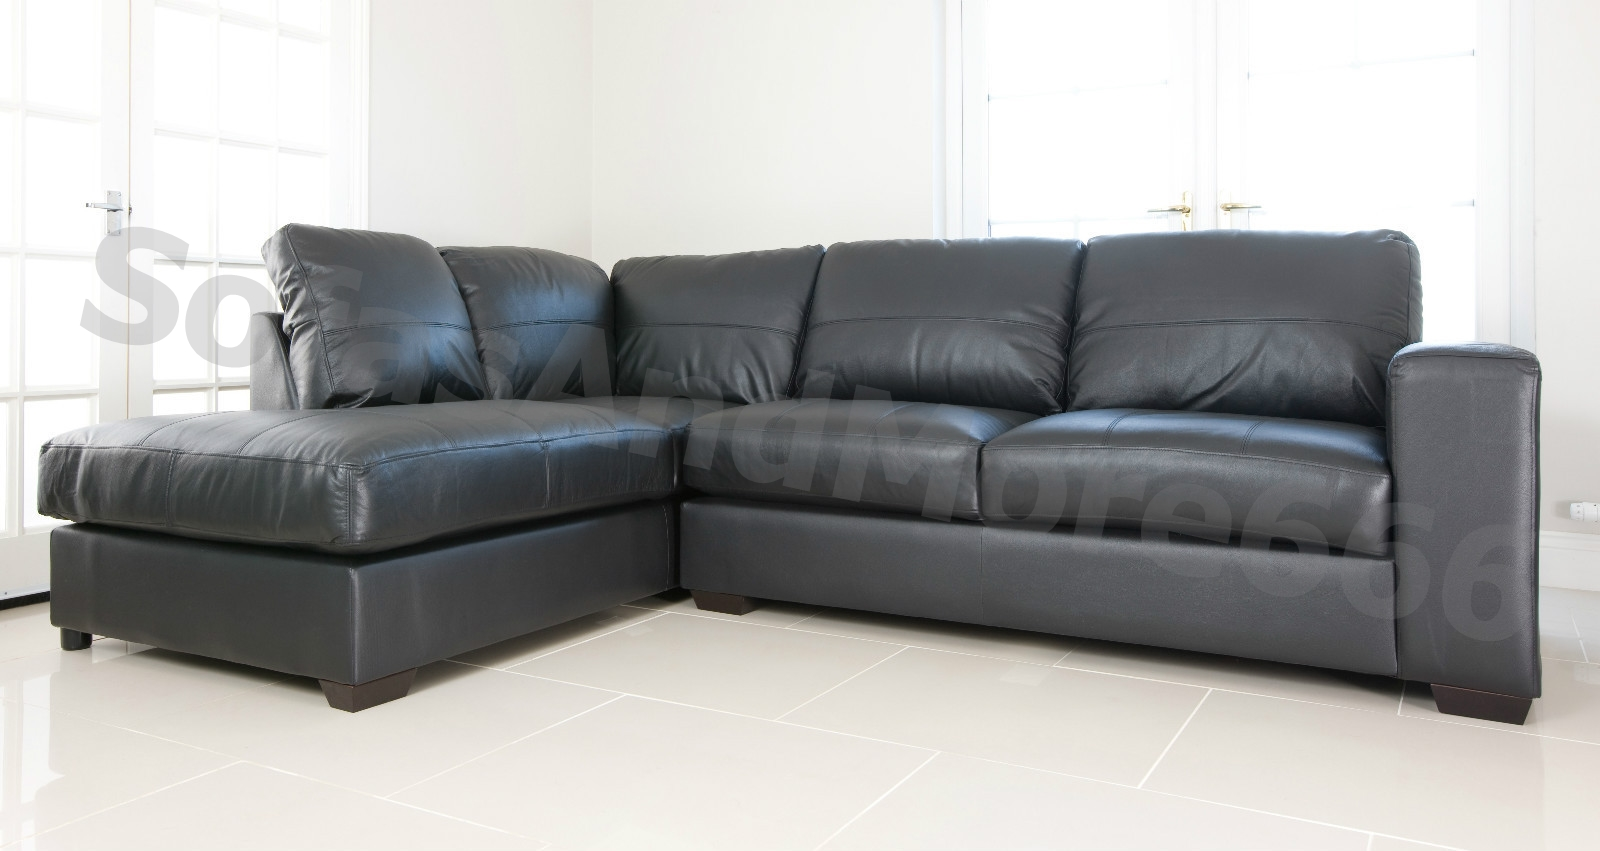 Cheap leather sofas argos cheap black leather corner sofa for Affordable furniture uk